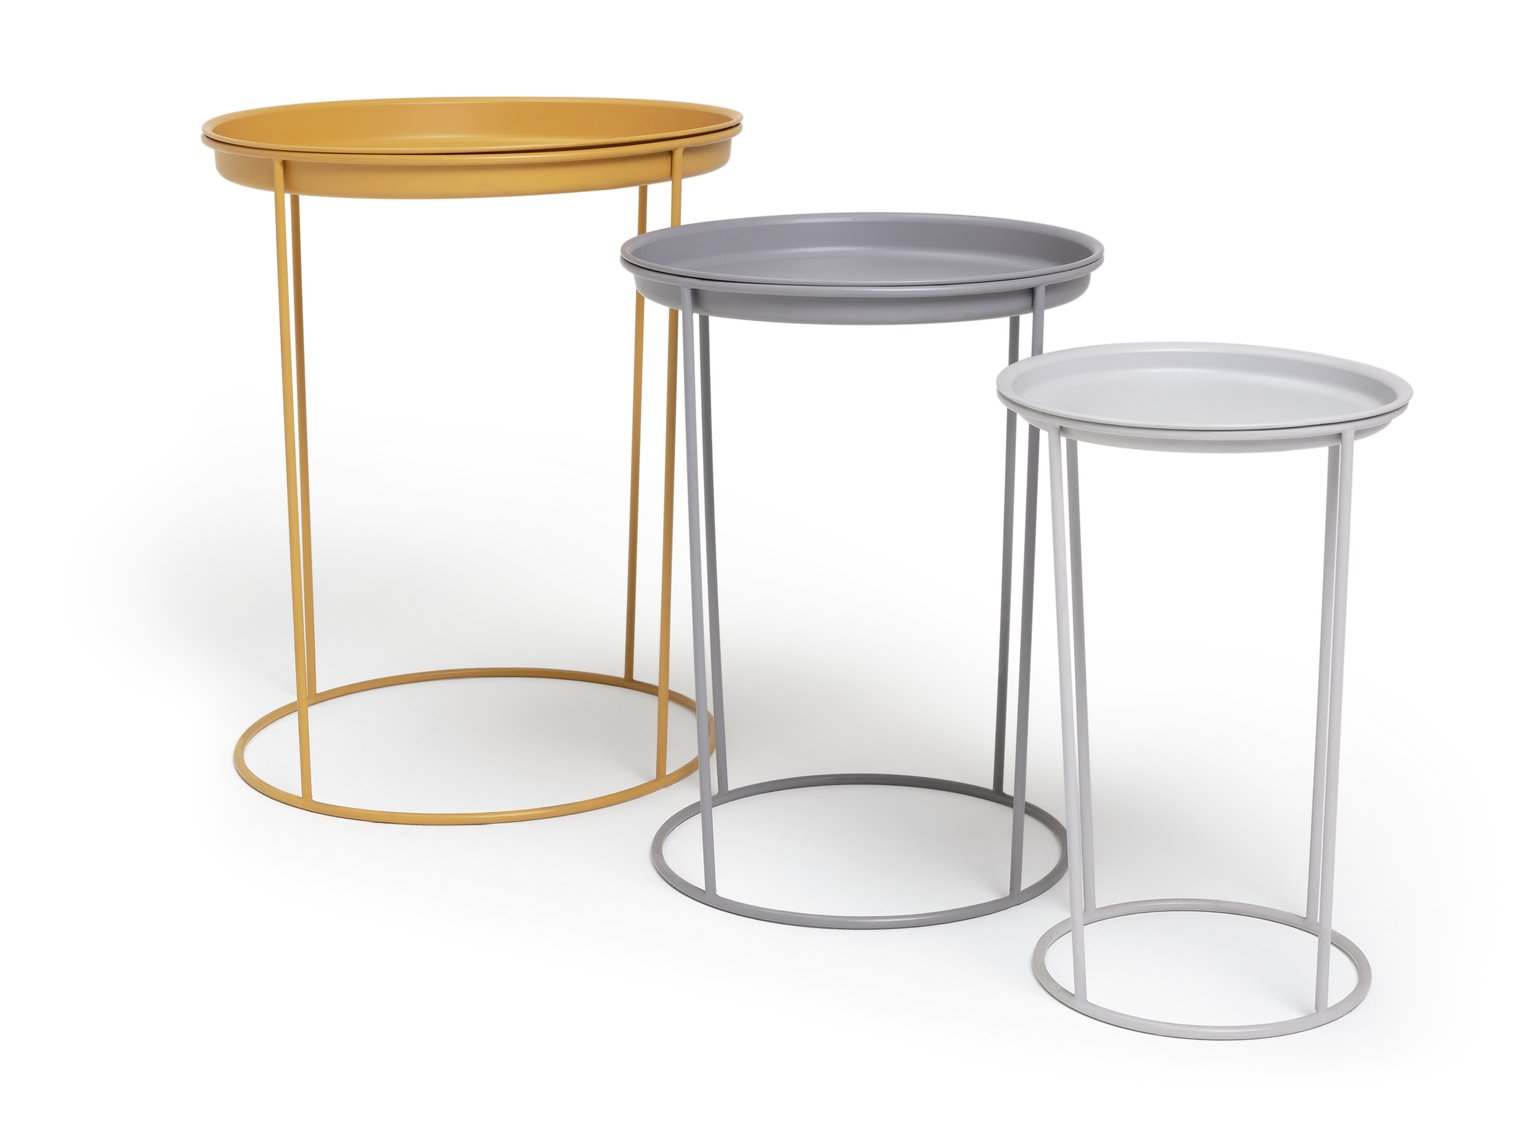 Argos Home Finley Nest of 3 Tables - Grey & Yellow